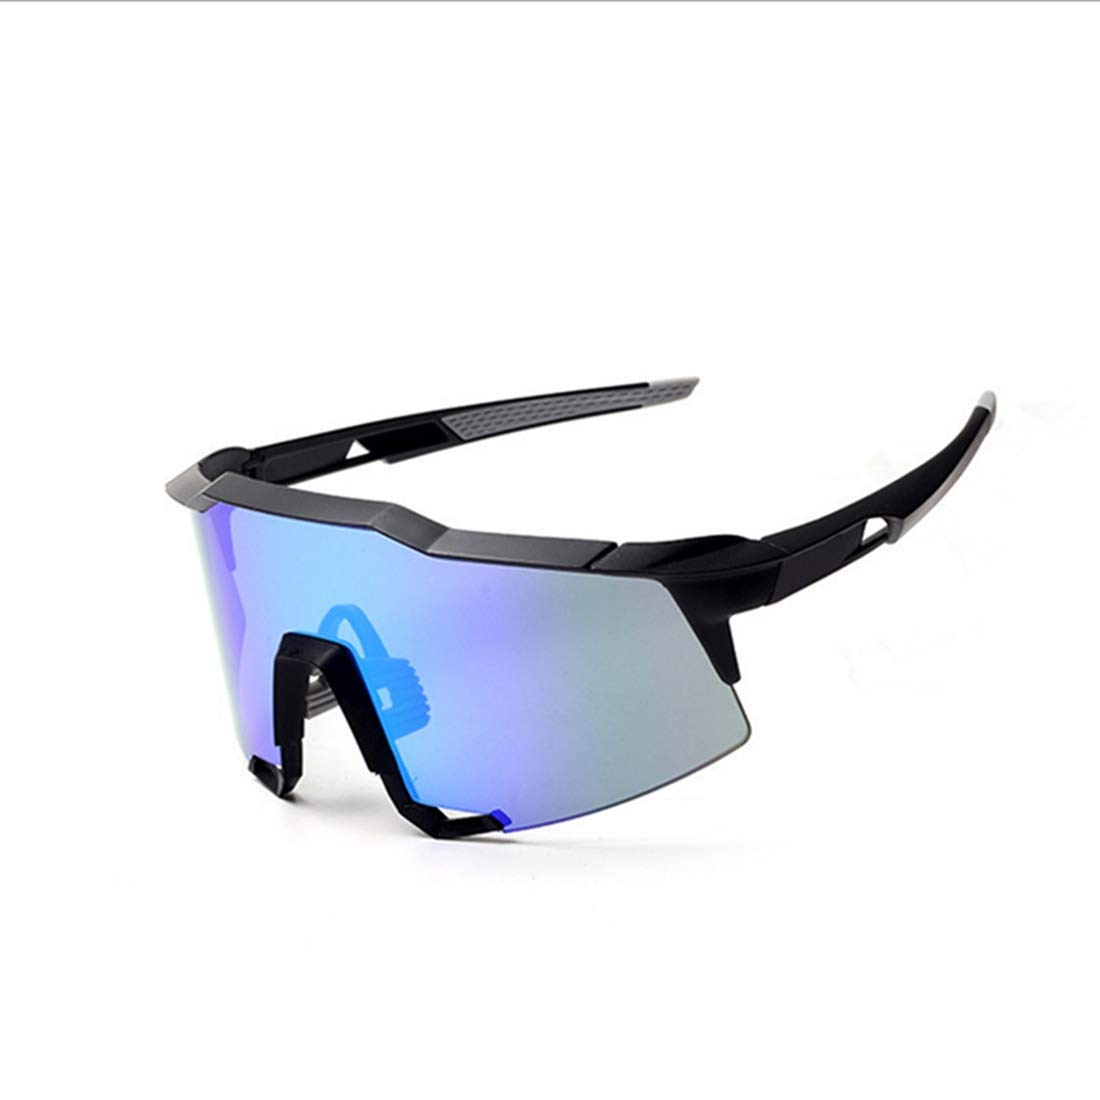 4995588750 Get Quotations · Carriemeow Large Lenses Cycling Glasses Sports Sunglasses  Outdoor Mountain Bike Mountain Climbing Fishing Glasses